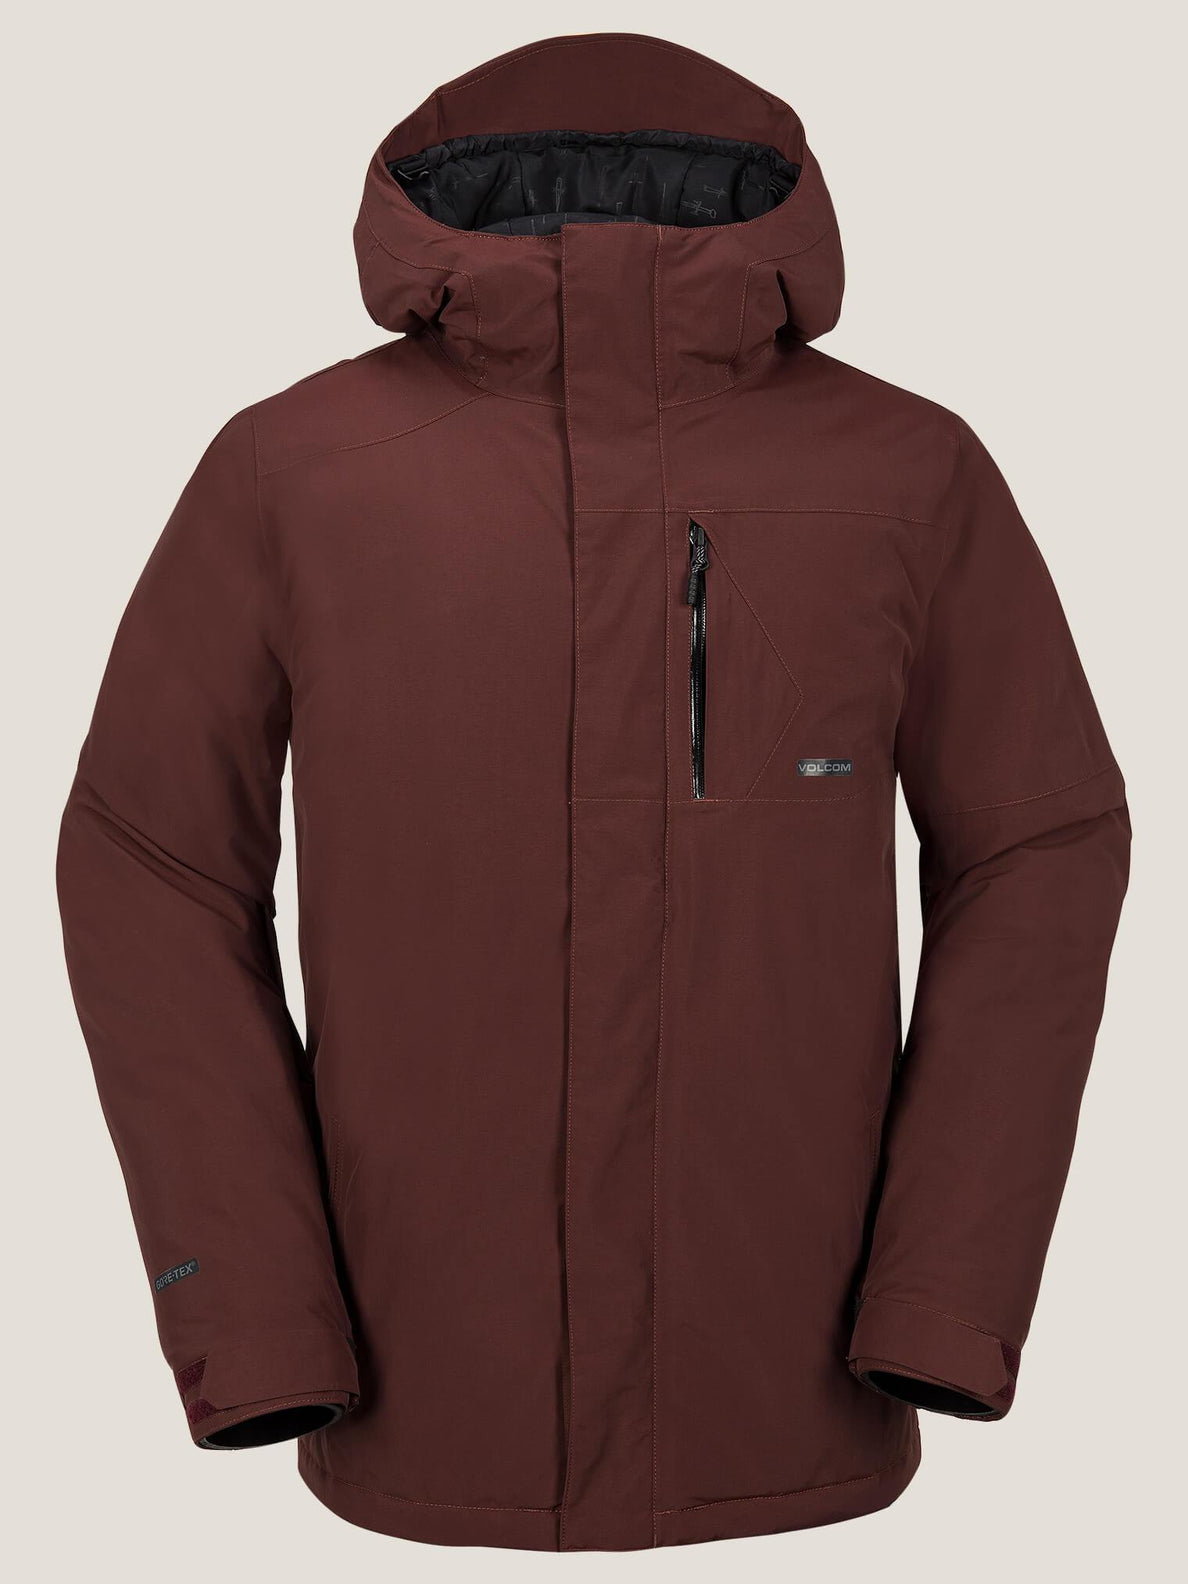 L Insulated Gore-tex® Jacket In Burnt Red, Front View